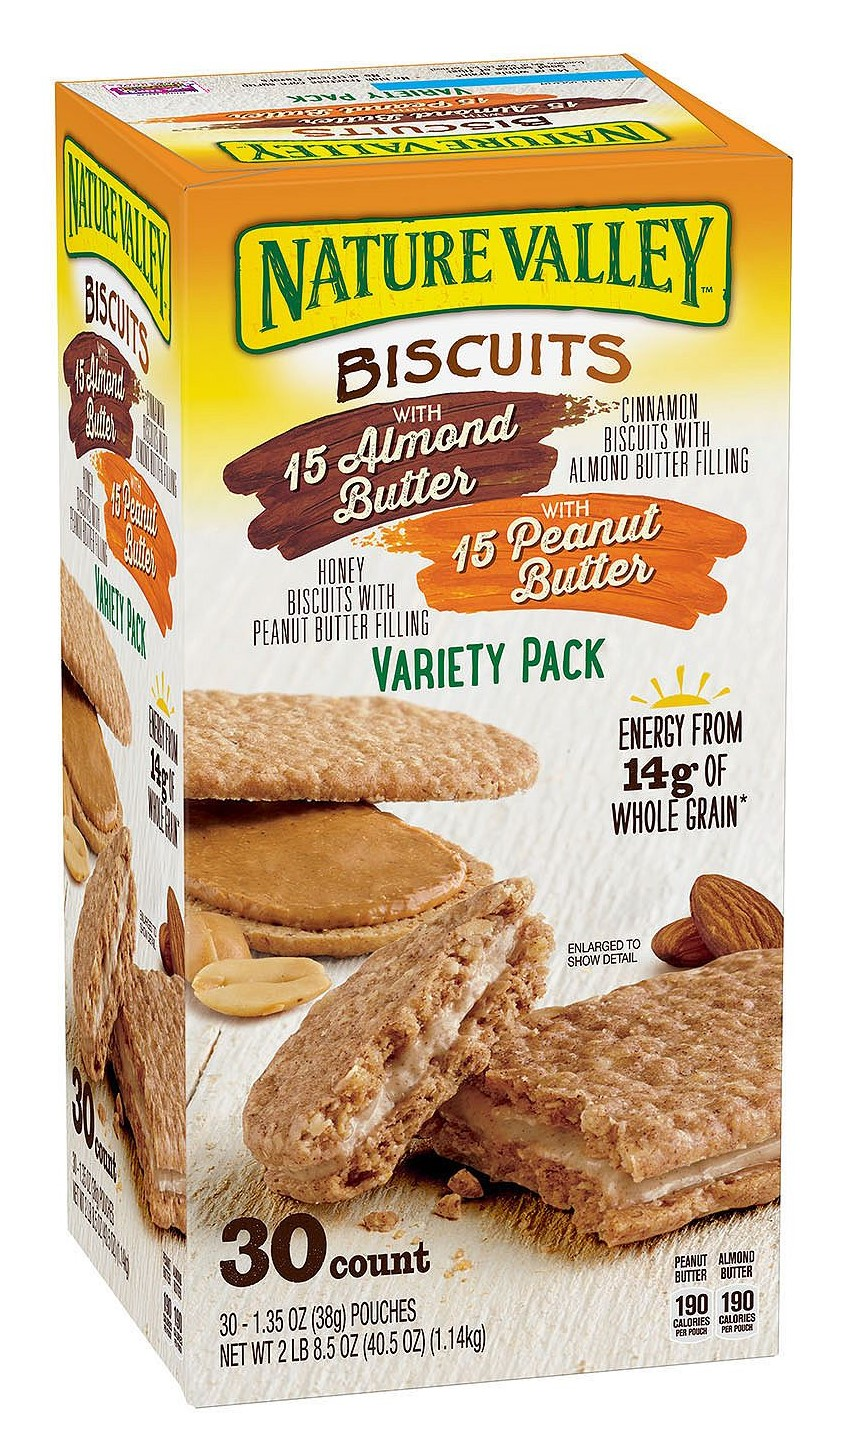 Nature Valley Biscuit Sandwich Almond Butter & Peanut Butter Variety Pack (1.35 oz ea., 30 ct.)-copy